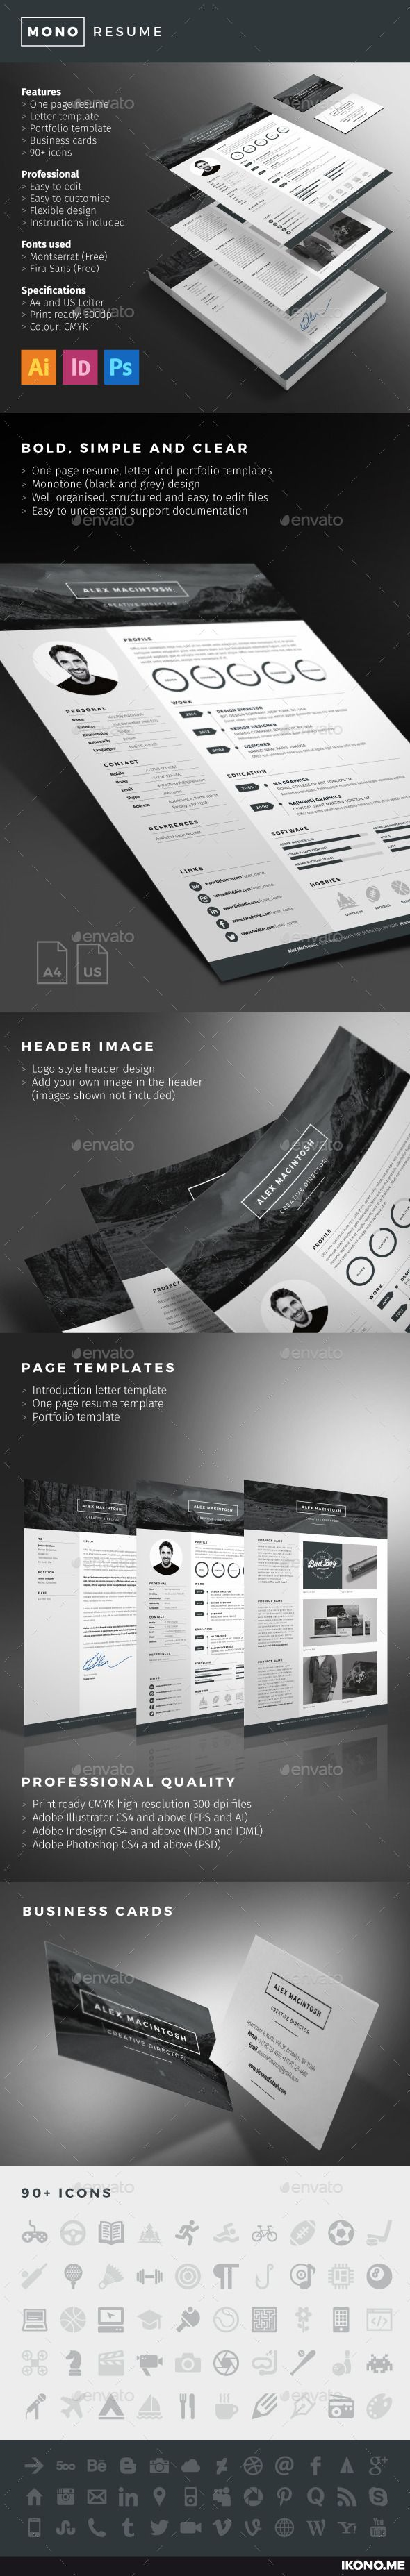 Mono Resume 7 best Resume inspo images